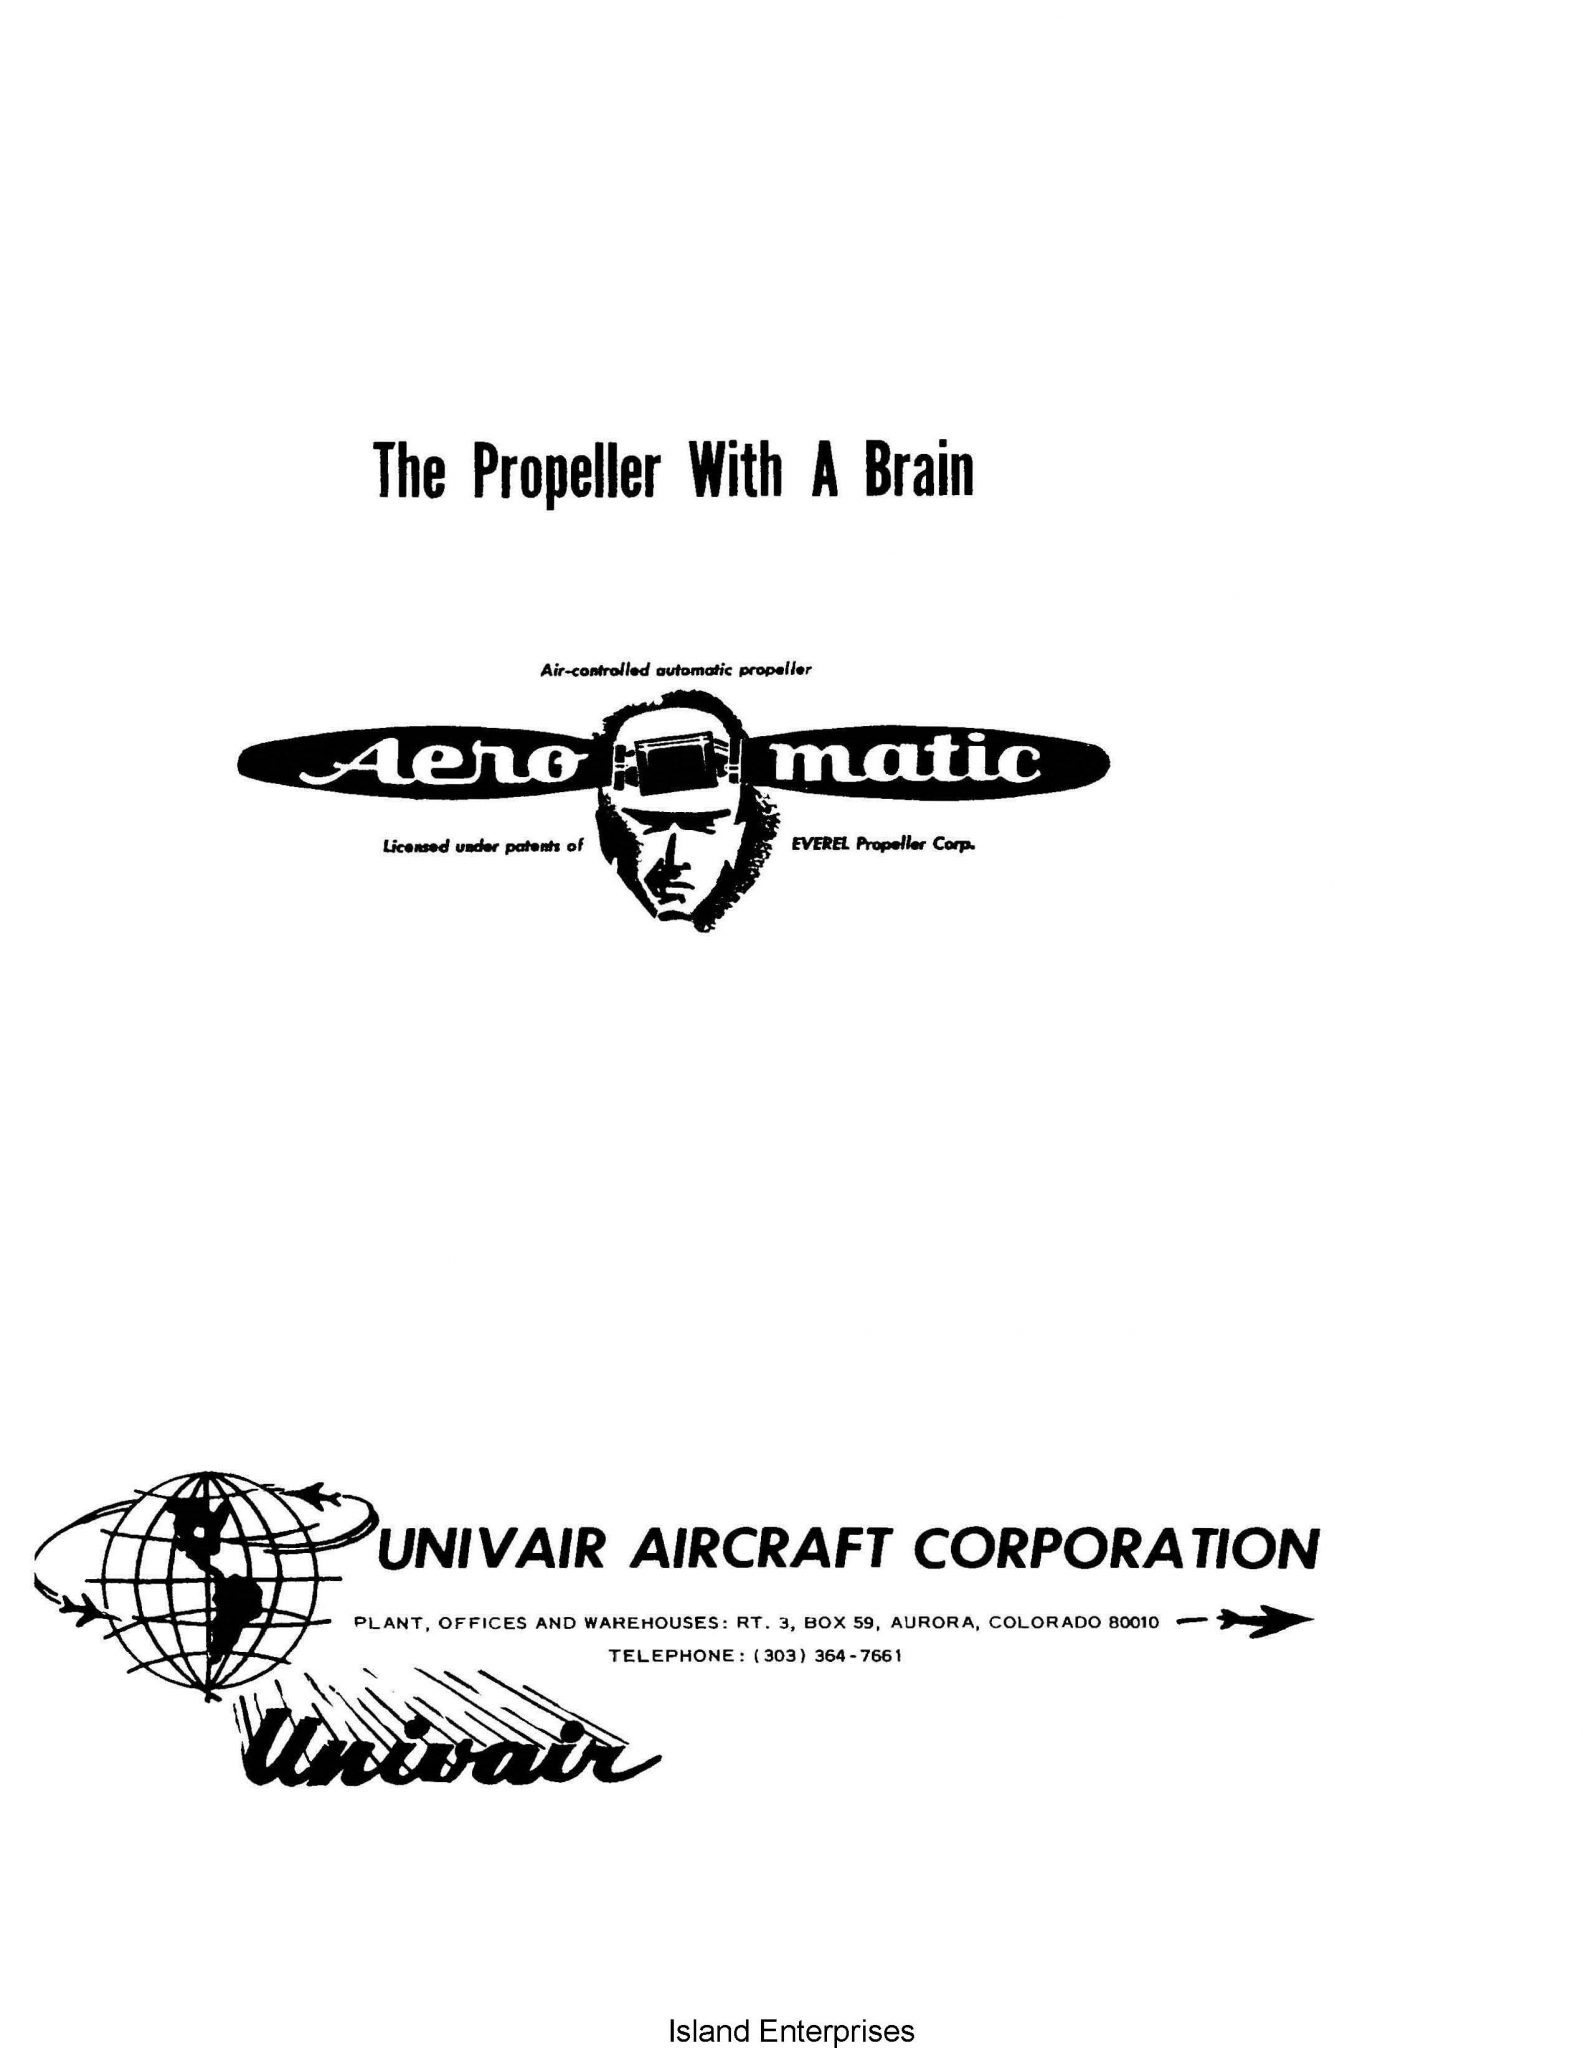 Hartzell Manual 149 (61-00-49) Propeller Owner's Manual